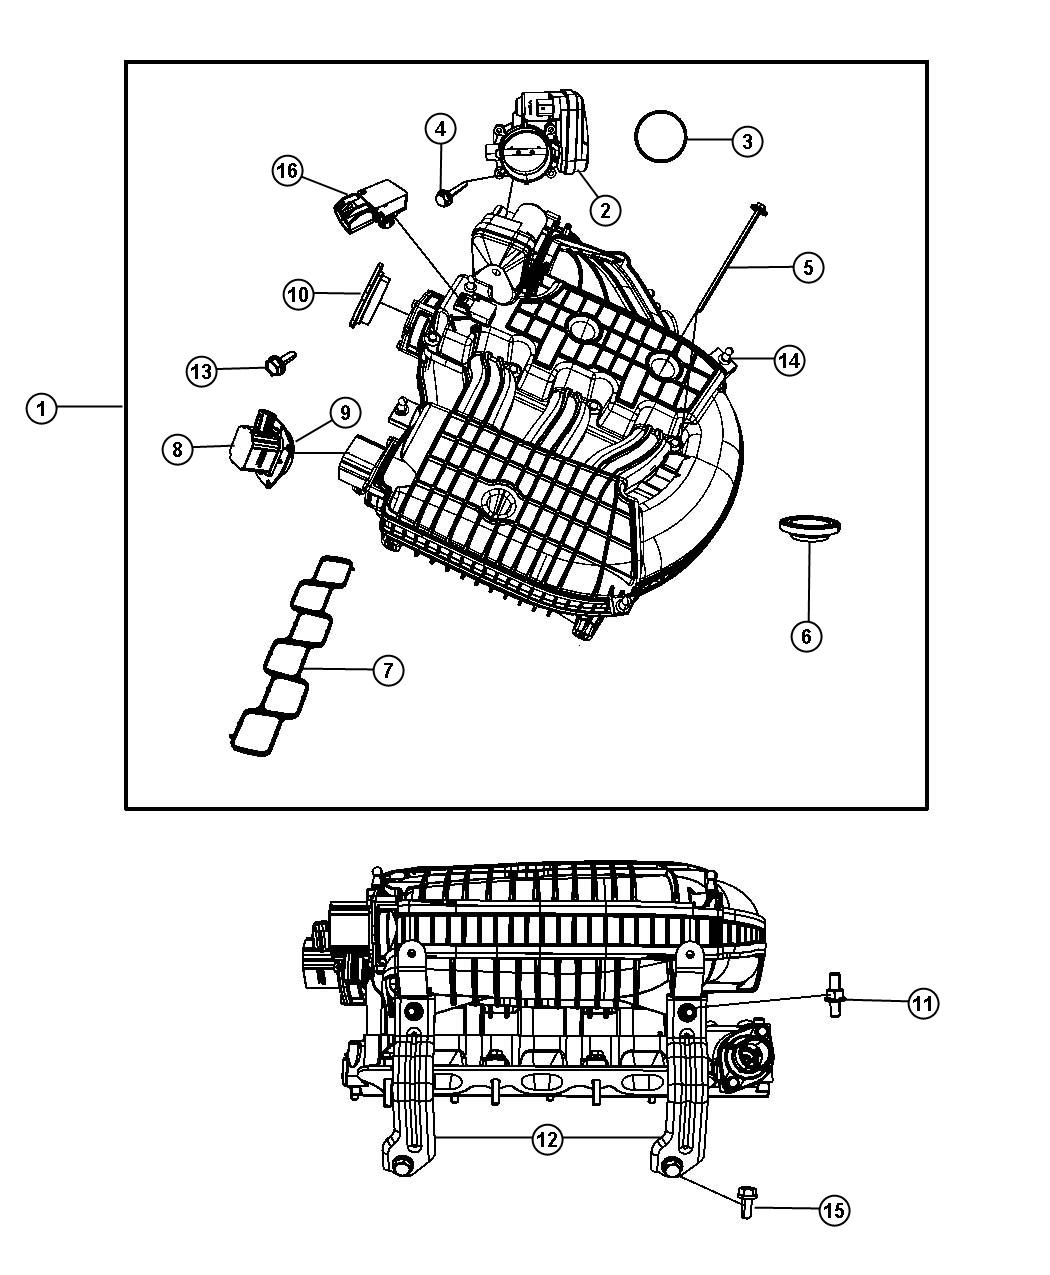 I on 2004 Chrysler Pacifica Manifold Diagram